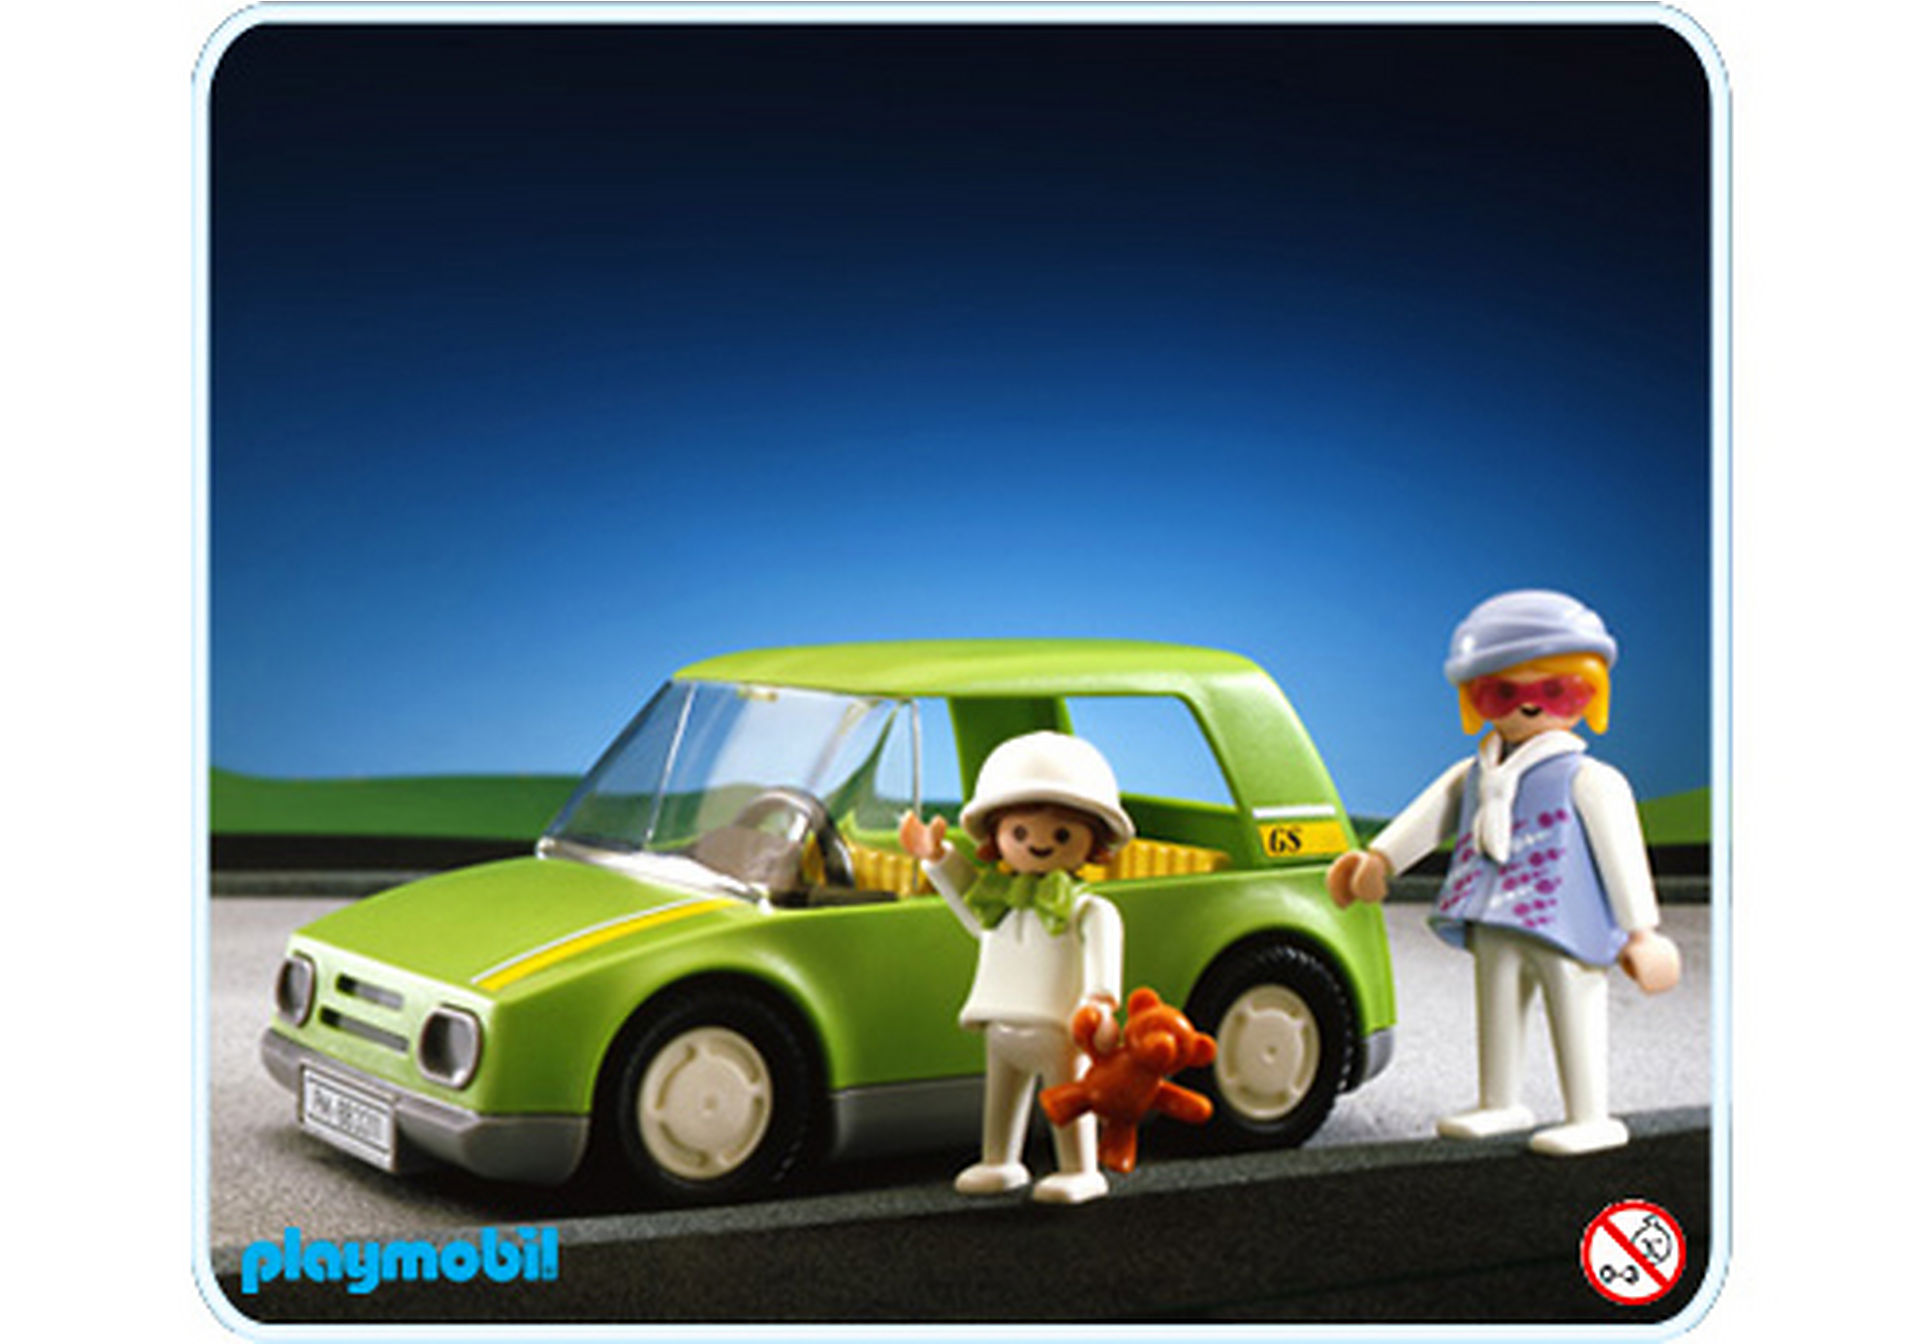 http://media.playmobil.com/i/playmobil/3211-B_product_detail/Voiture de ville